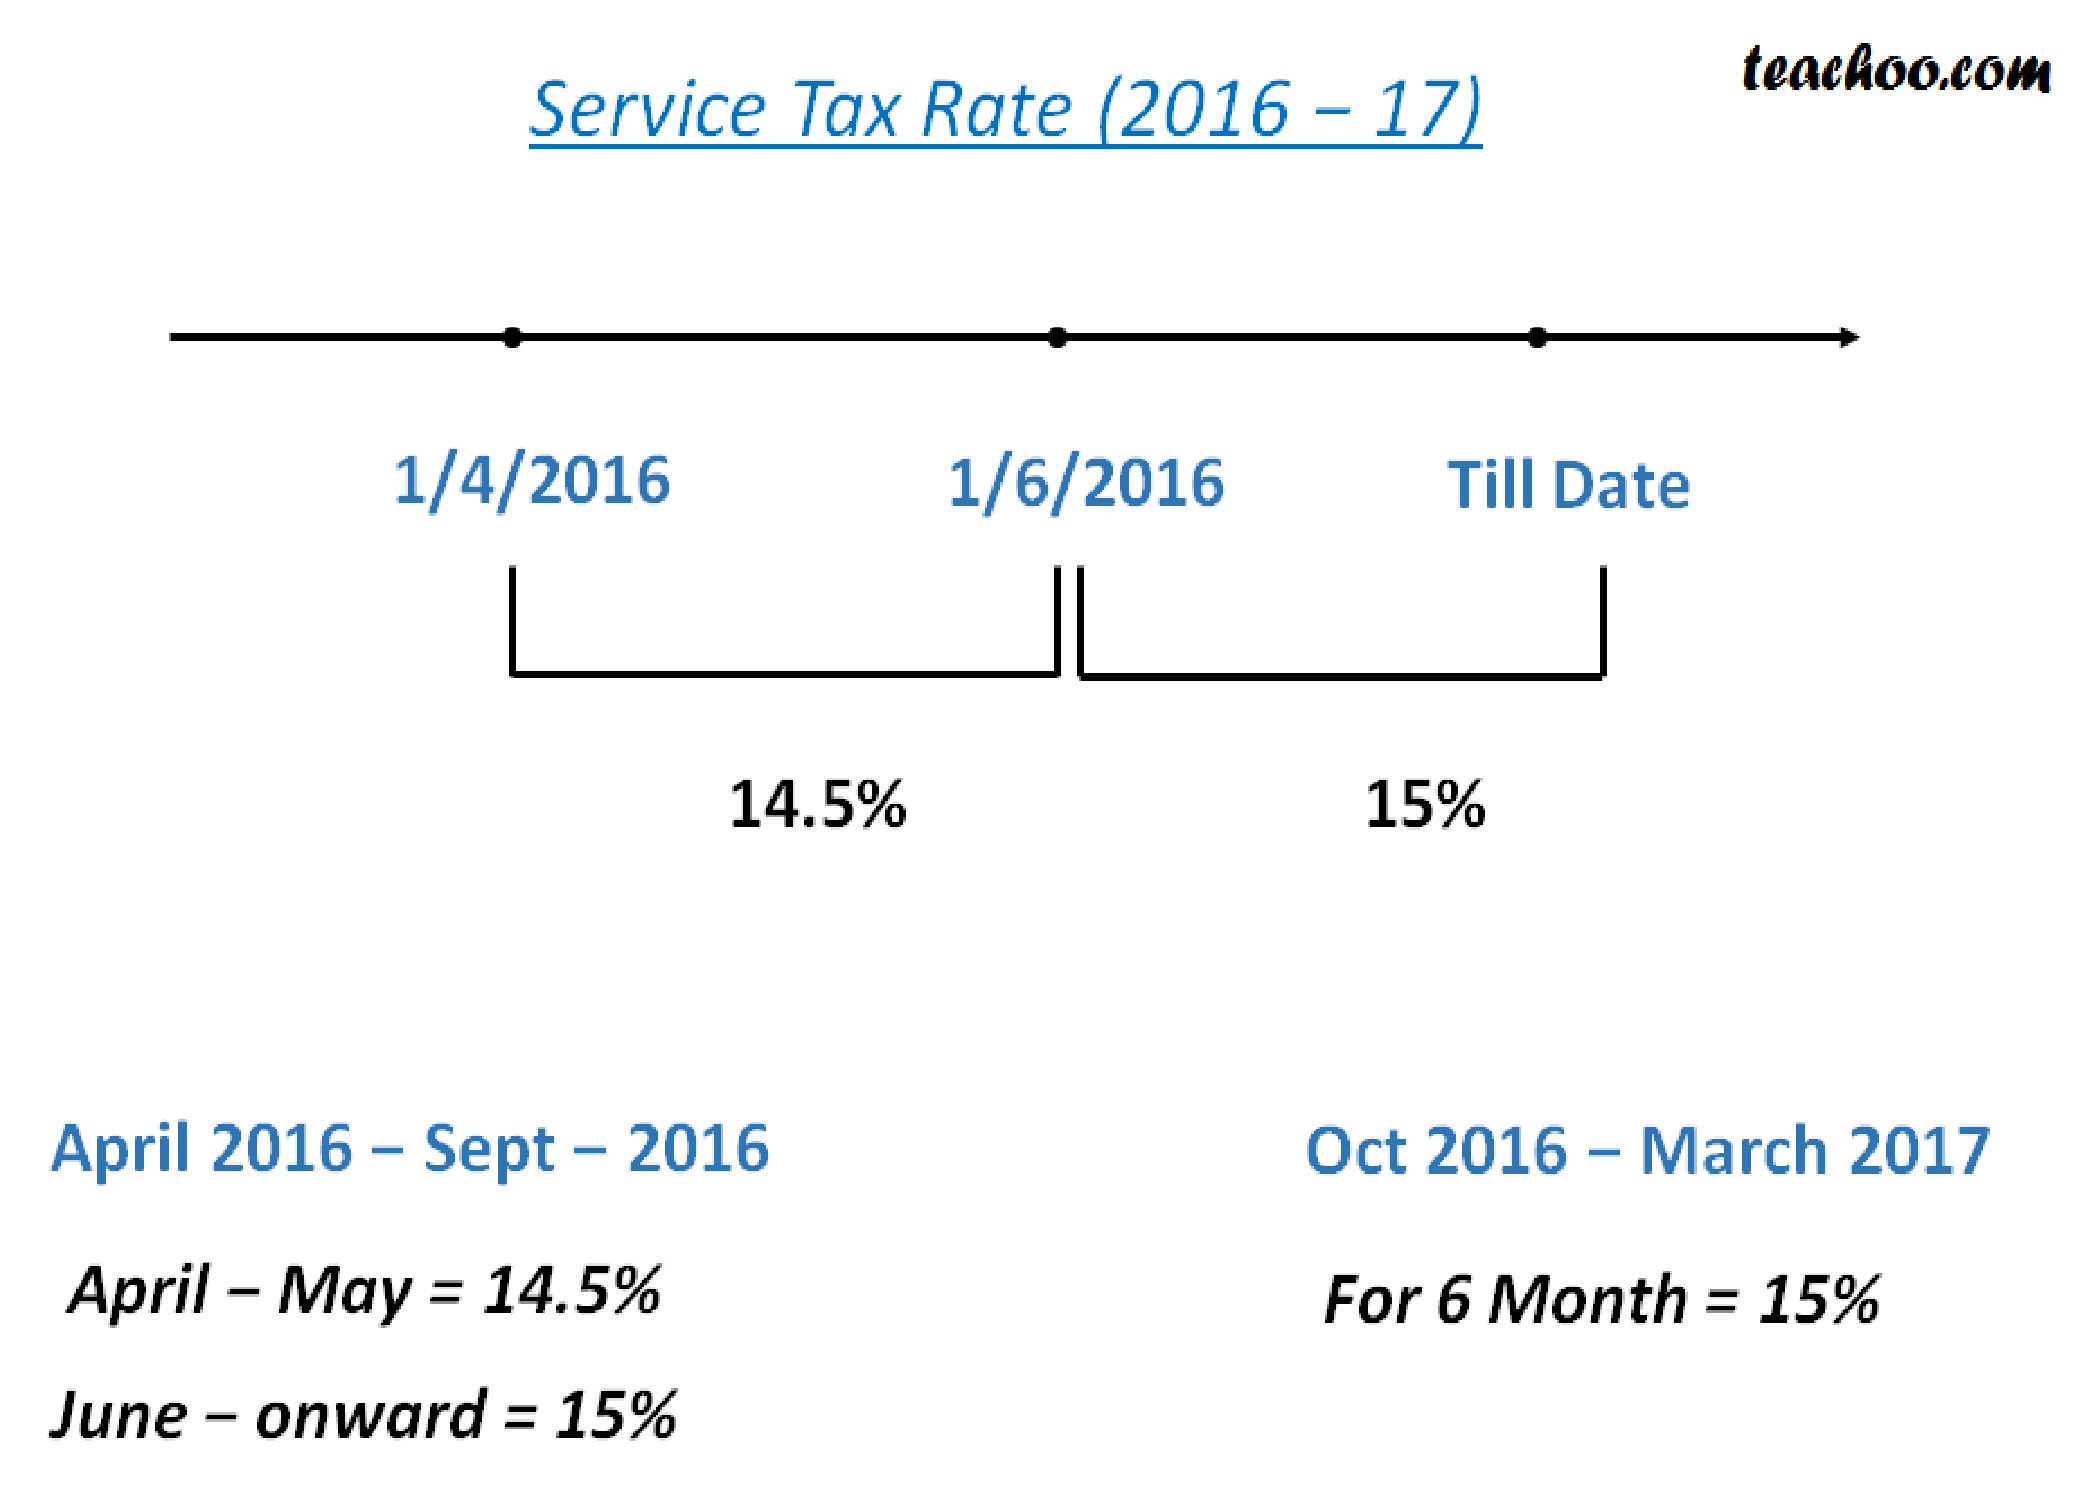 service tax image 2.png. ST-3 Return Due Date extended